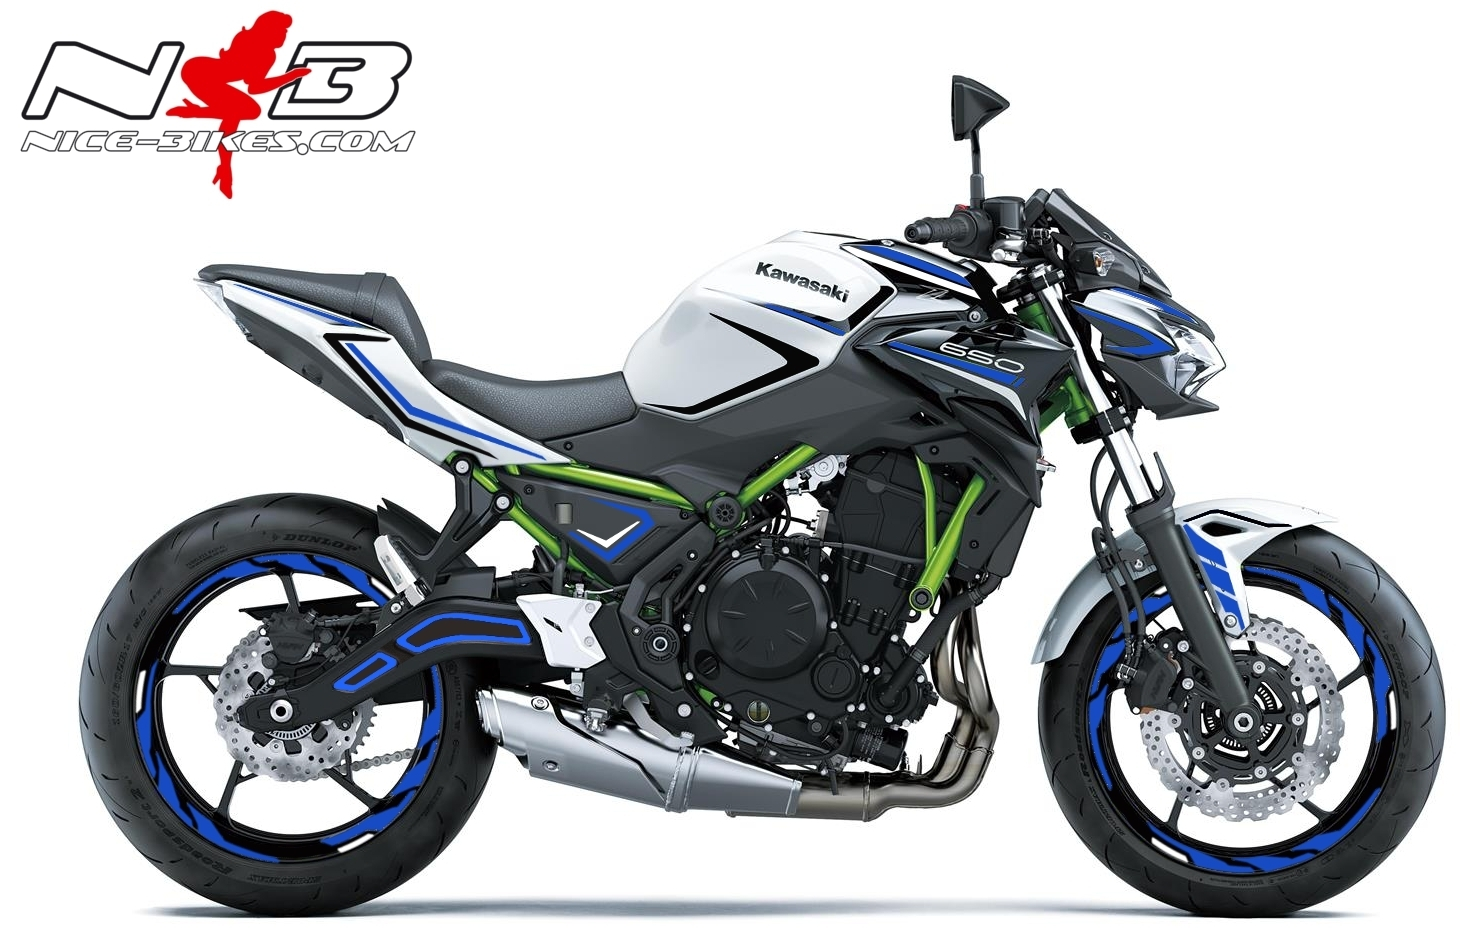 Foliendesign Kawasaki Z650 Bj. 2020 Racing Blue